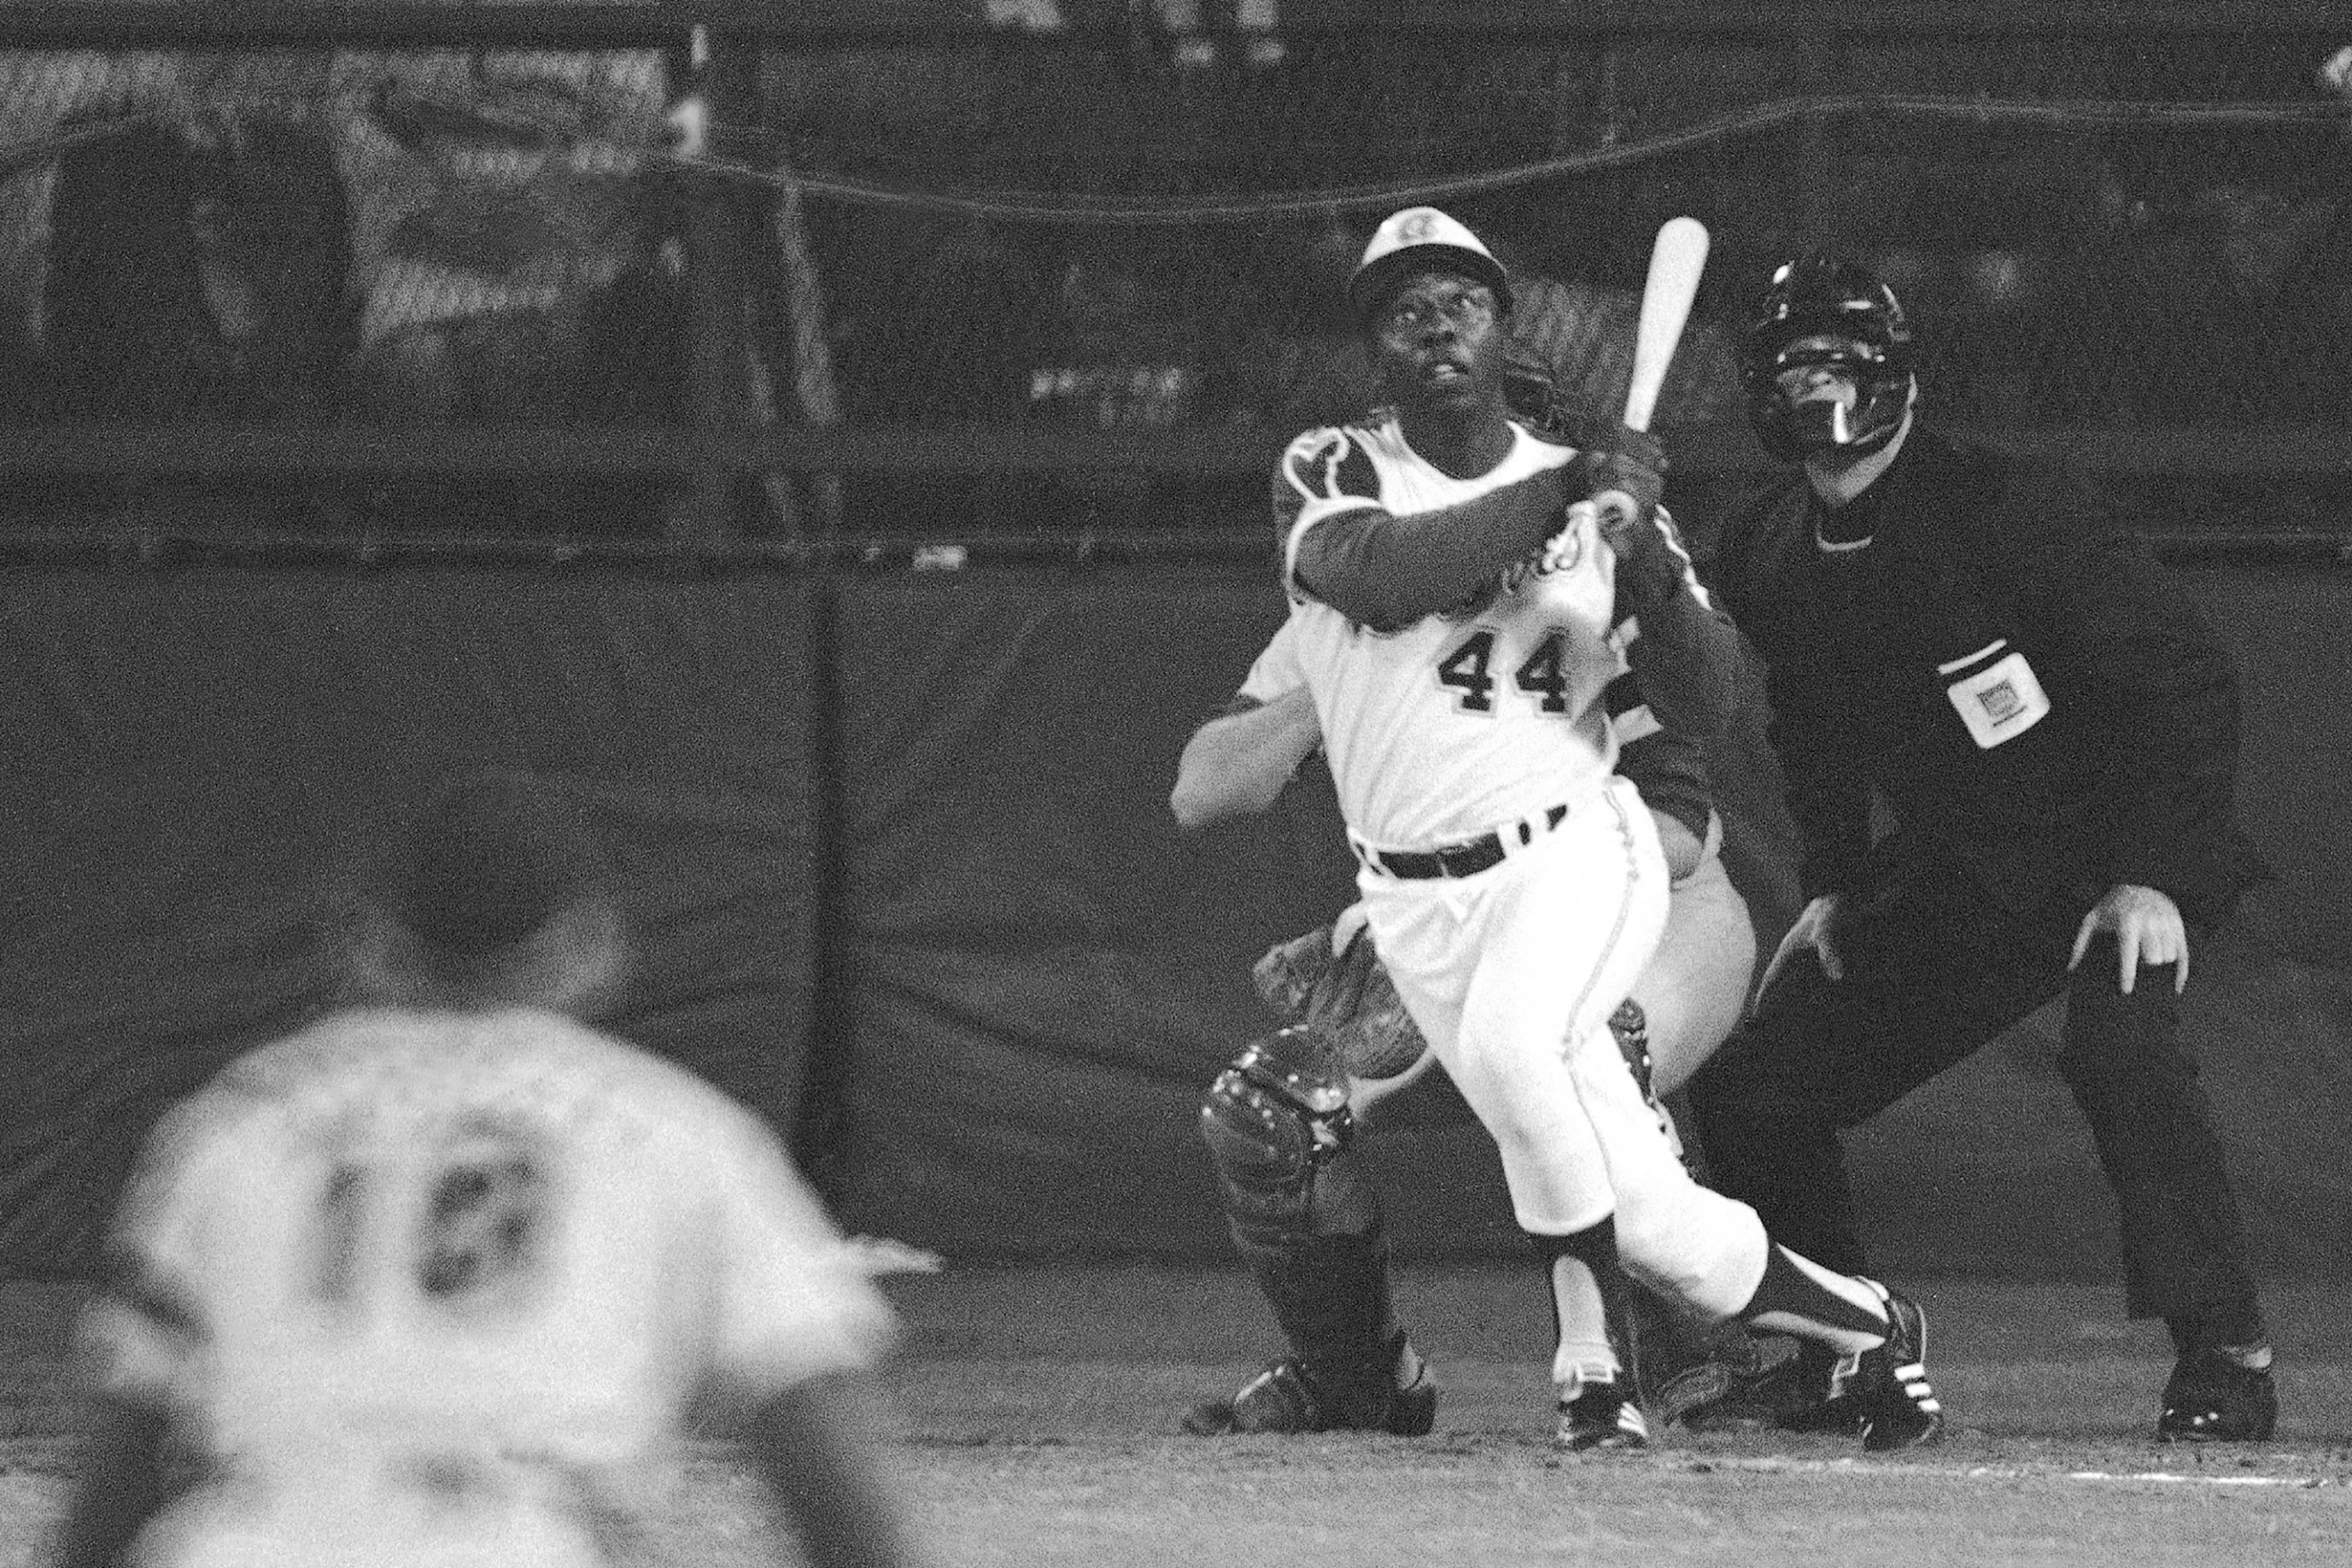 FILE - Atlanta Braves' Hank Aaron eyes the flight of the ball after hitting his 715th career homer in a game against the Los Angeles Dodgers in Atlanta, Ga., in this April 8, 1974 file photo. Dodgers pitcher Al Downing, catcher Joe Ferguson and umpire David Davidson look on. Hank Aaron, who endured racist threats with stoic dignity during his pursuit of Babe Ruth but went on to break the career home run record in the pre-steroids era, died early Friday, Jan. 22, 2021. He was 86. The Atlanta Braves said Aaron died peacefully in his sleep. No cause of death was given. (AP Photo/Harry Harrris, FIle)